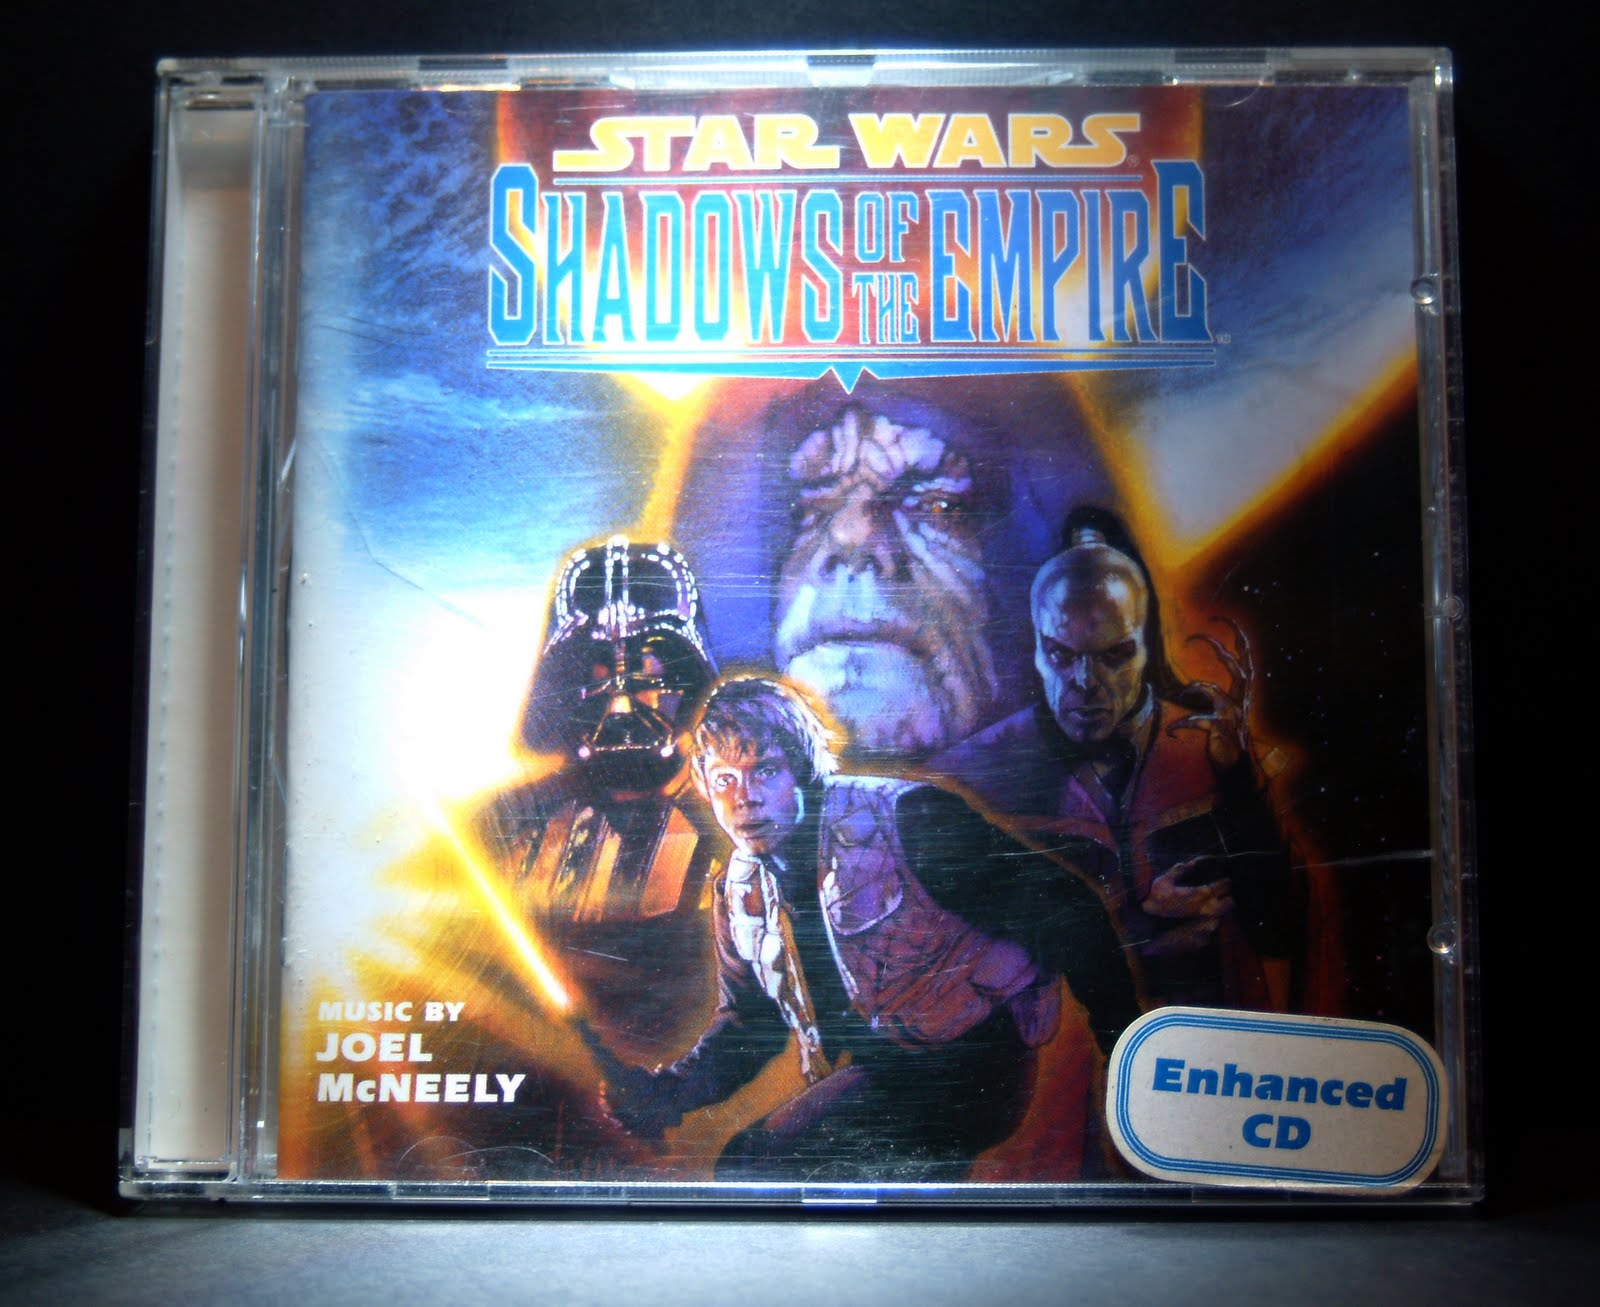 Star Wars Shadows of the Empire Soundtrack